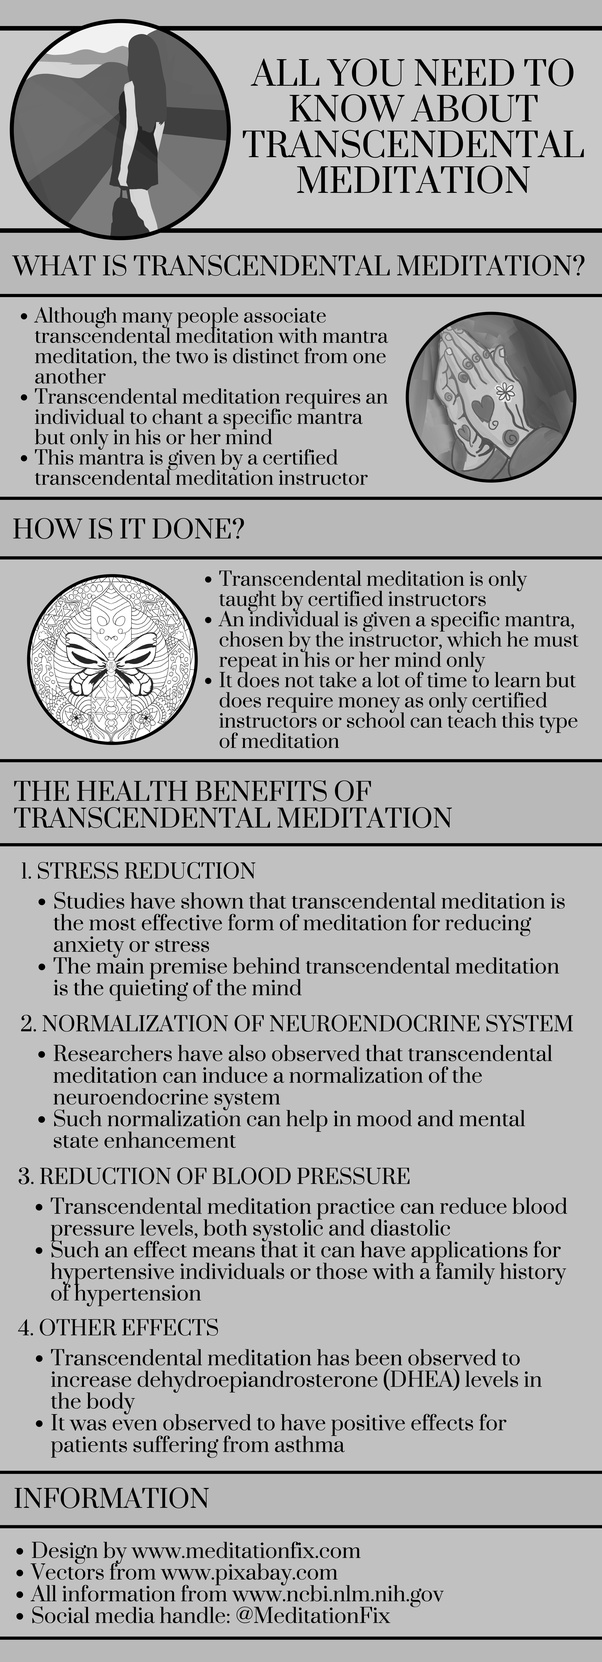 Forum on this topic: 6 Benefits of Transcendental Meditation (and How , 6-benefits-of-transcendental-meditation-and-how/